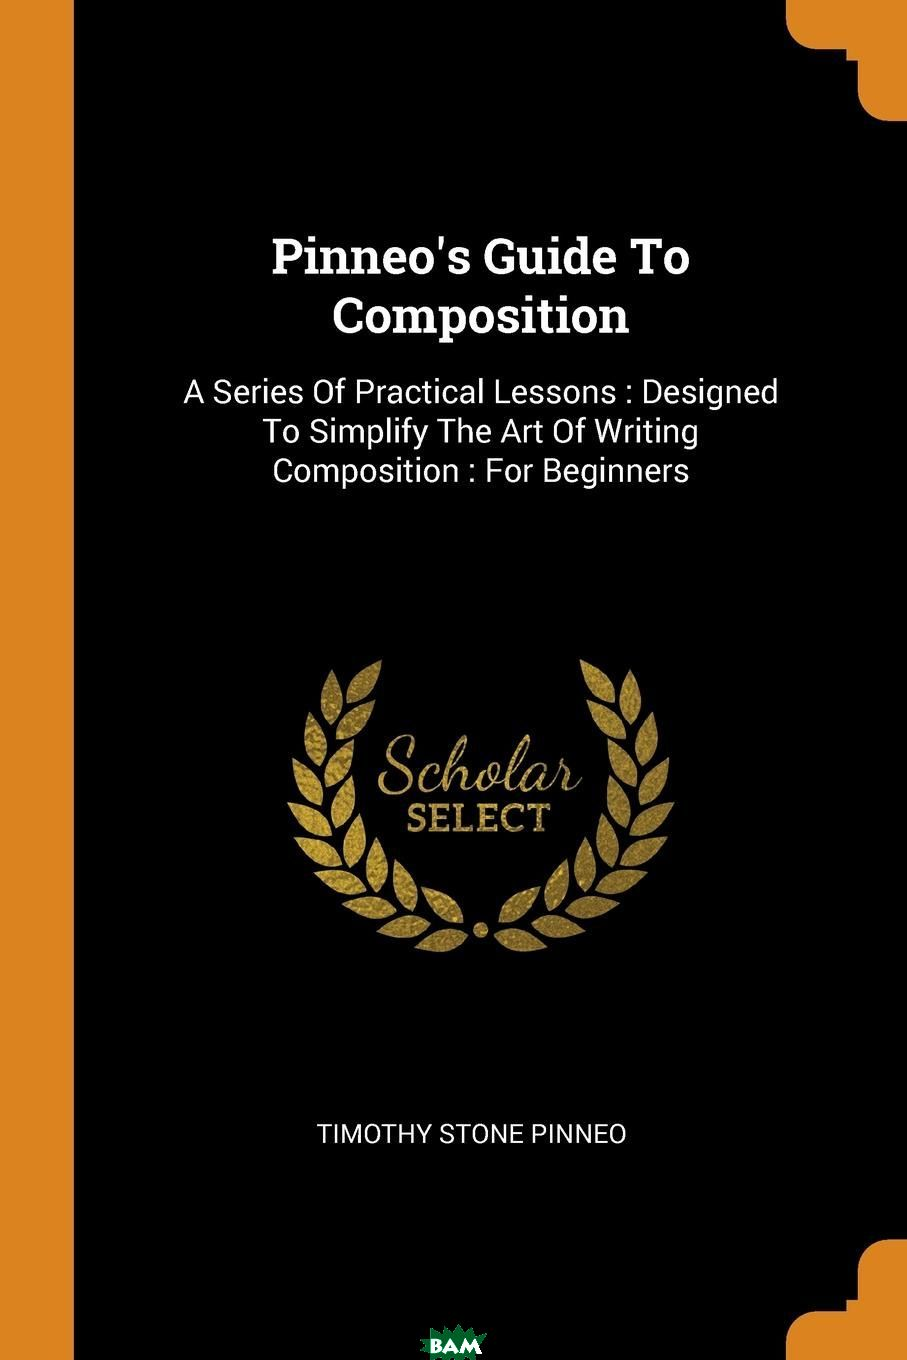 Pinneo.s Guide To Composition. A Series Of Practical Lessons : Designed To Simplify The Art Of Writing Composition : For Beginners, Timothy Stone Pinneo, 9780353621541  - купить со скидкой